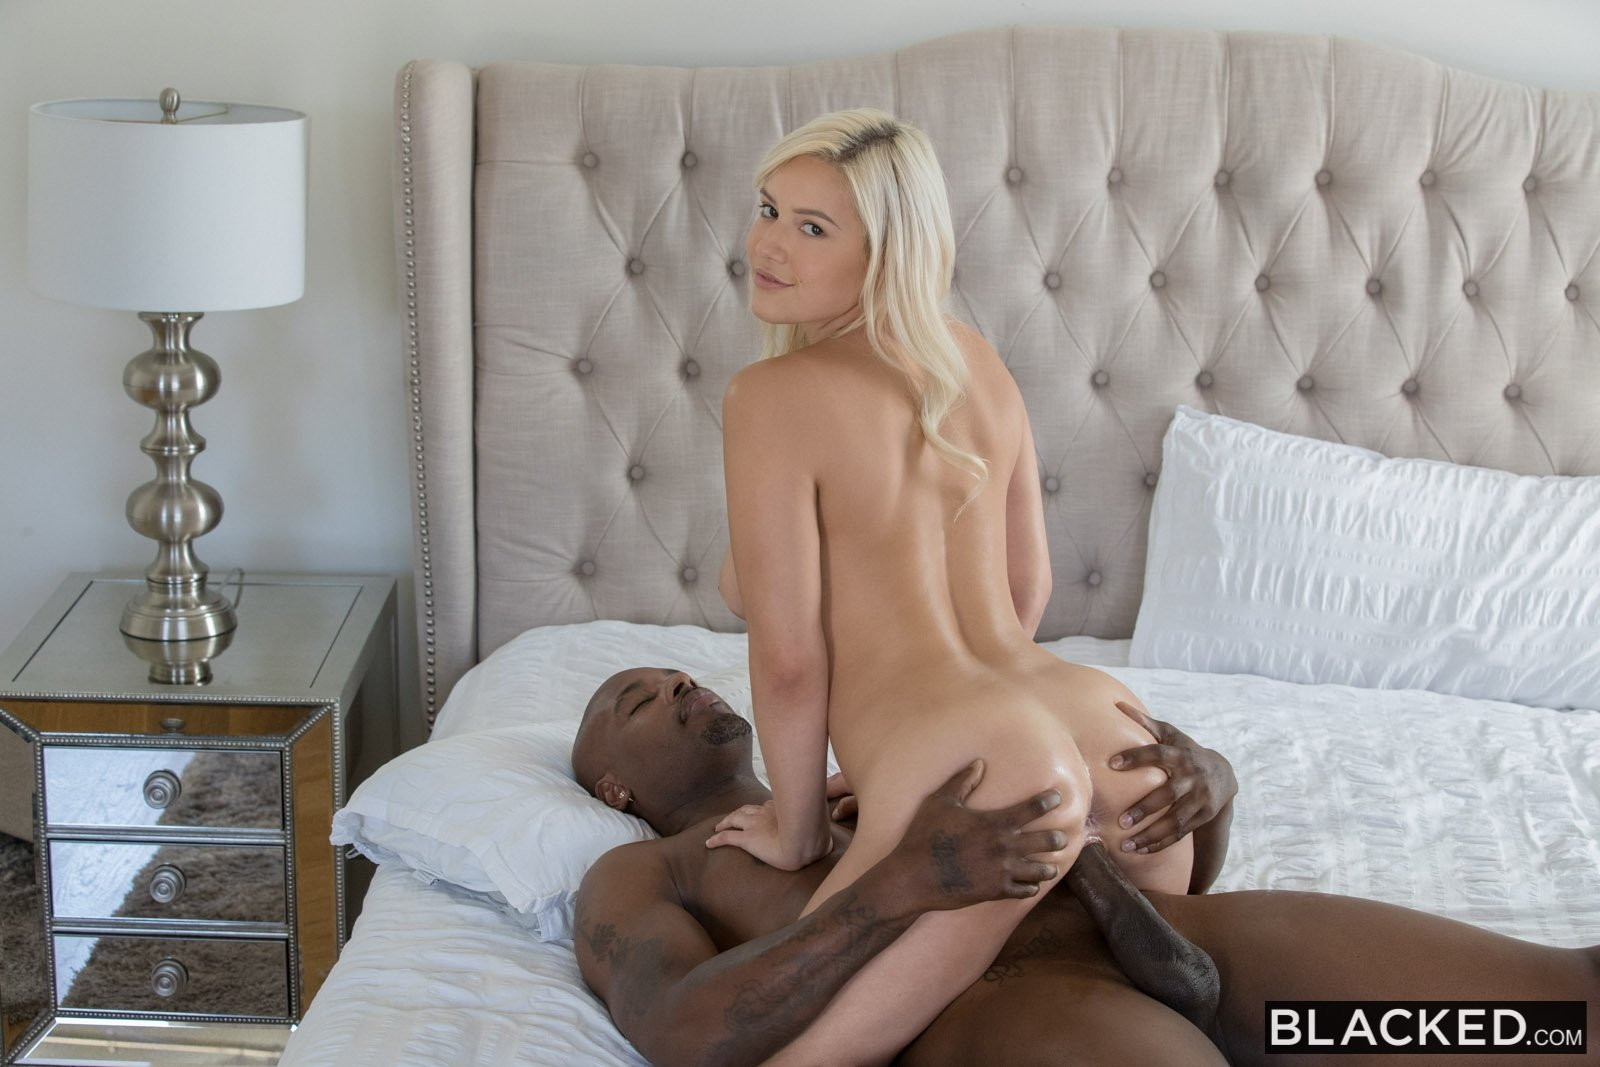 Cheating wife confess fucking young stud to husband while having sex with him